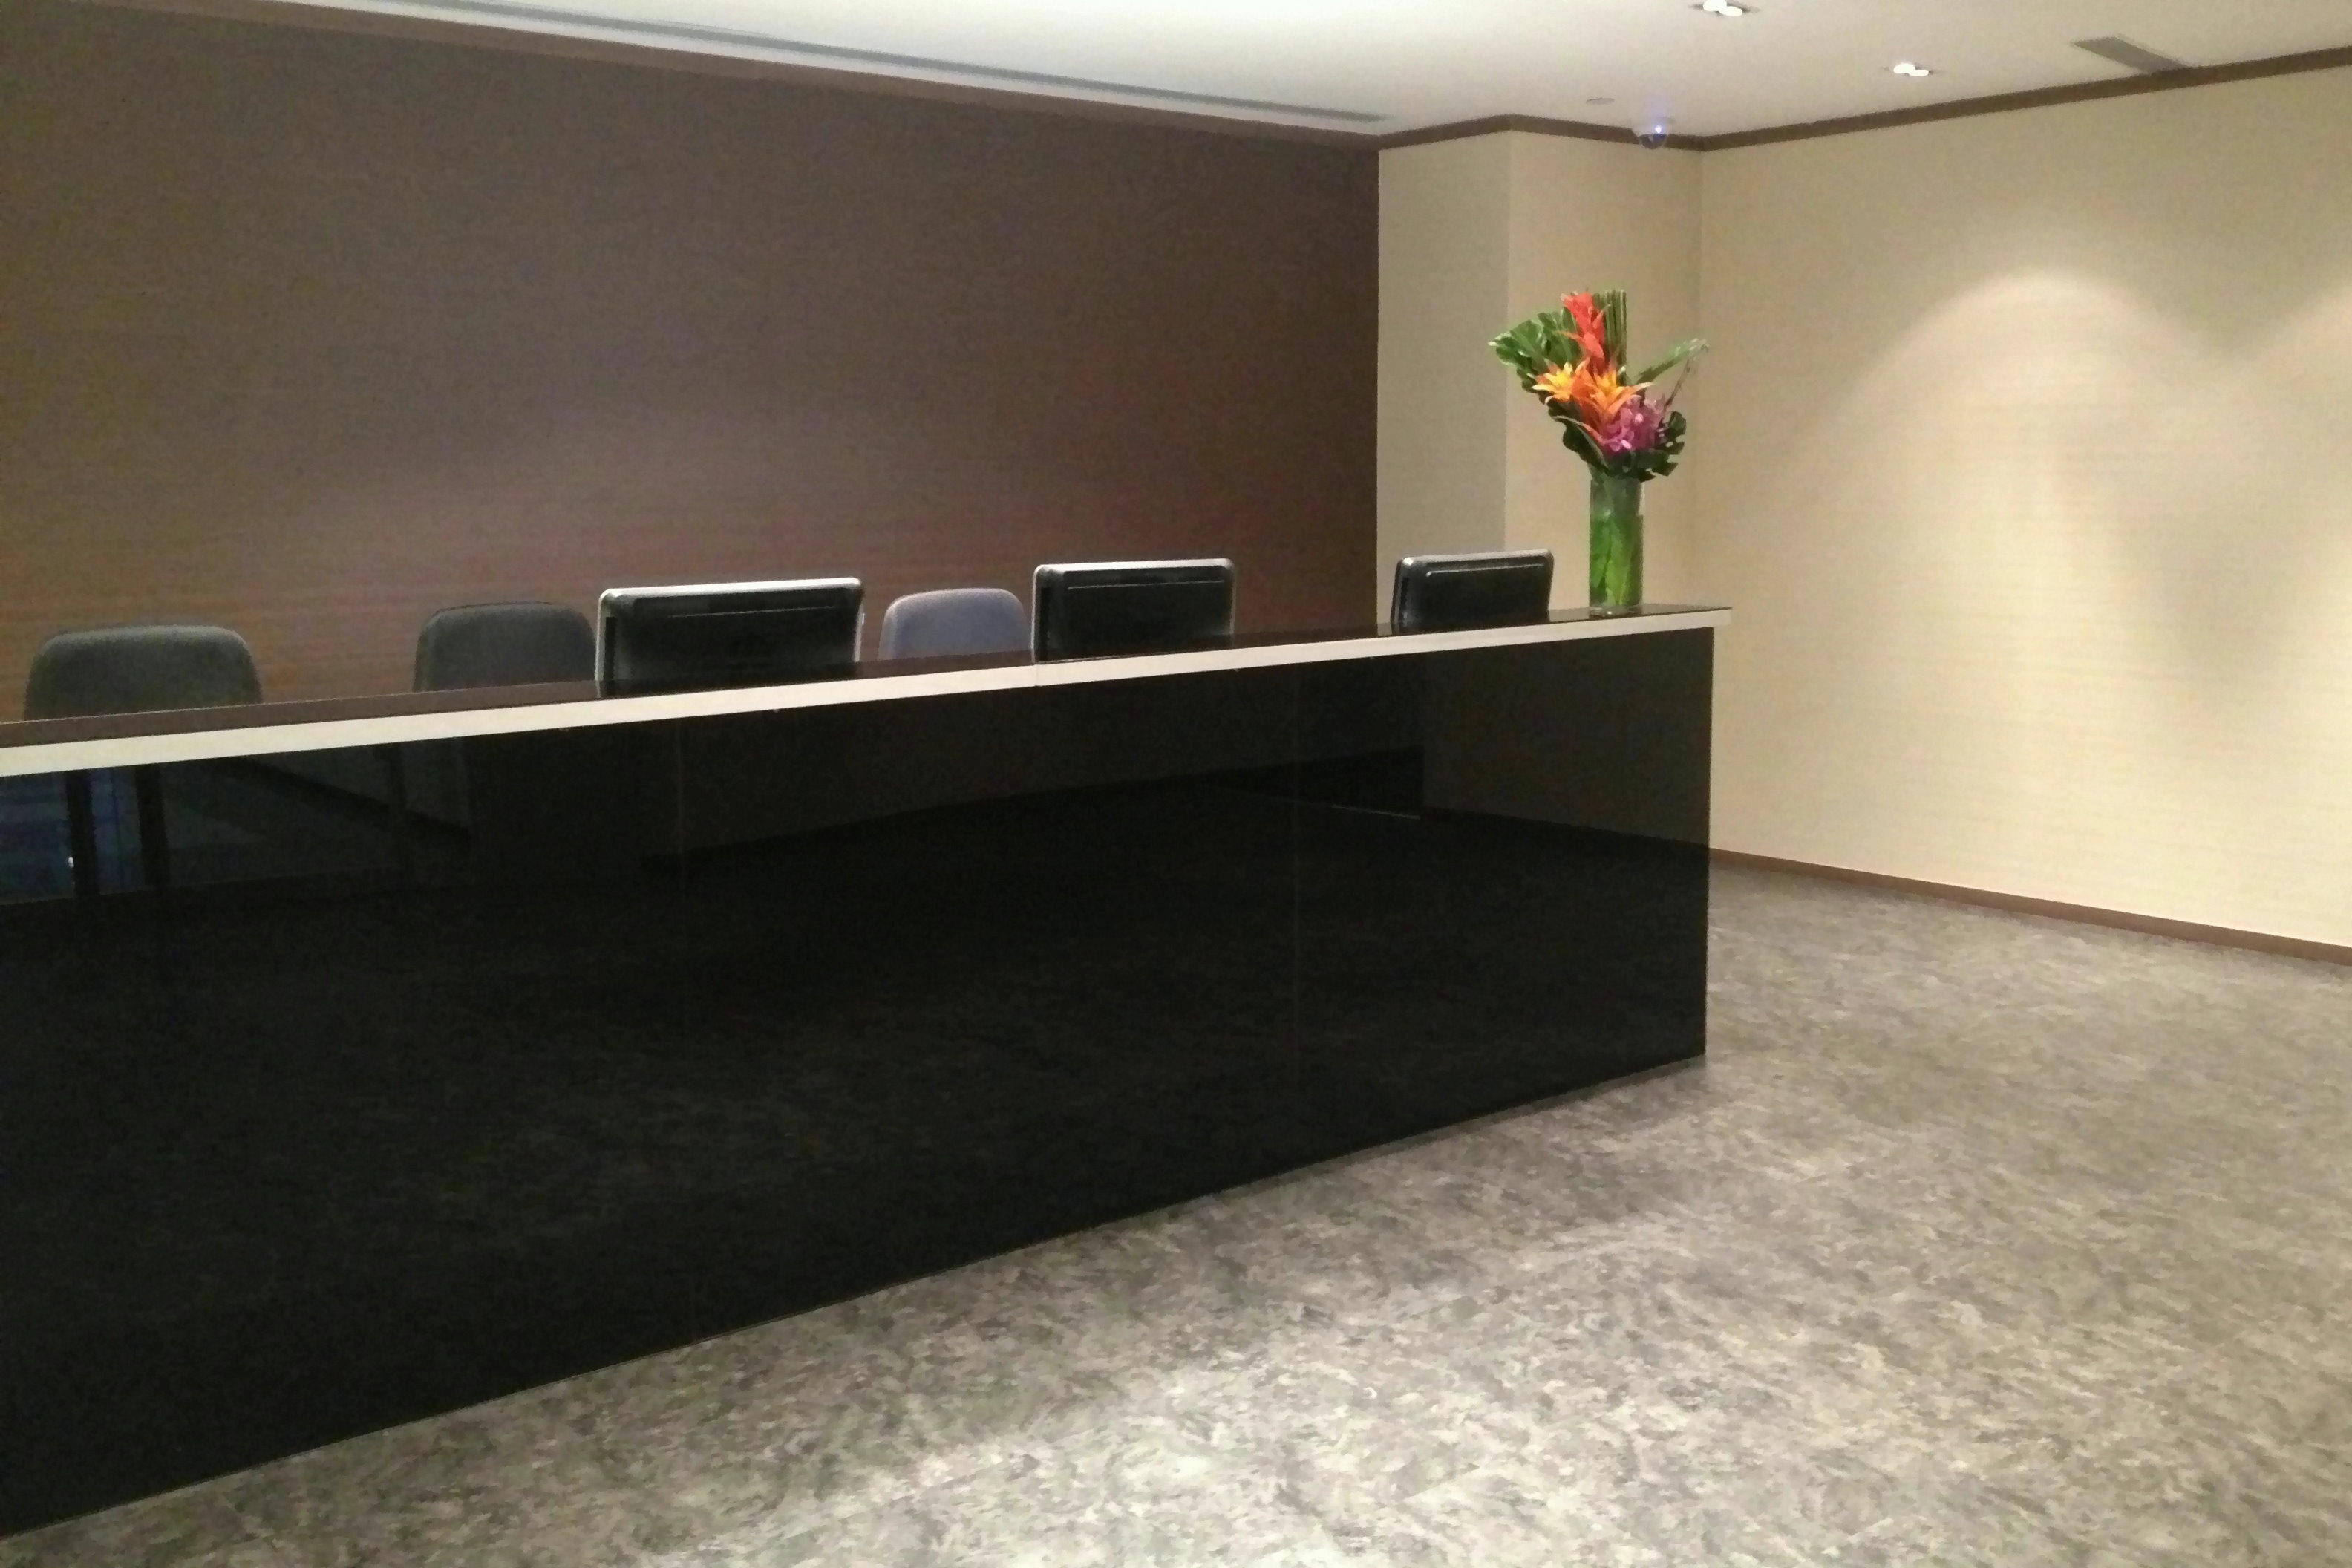 Aegean Business Center - Oxford House - Taikoo Place - King's Road - Quarry Bay - Hong Kong